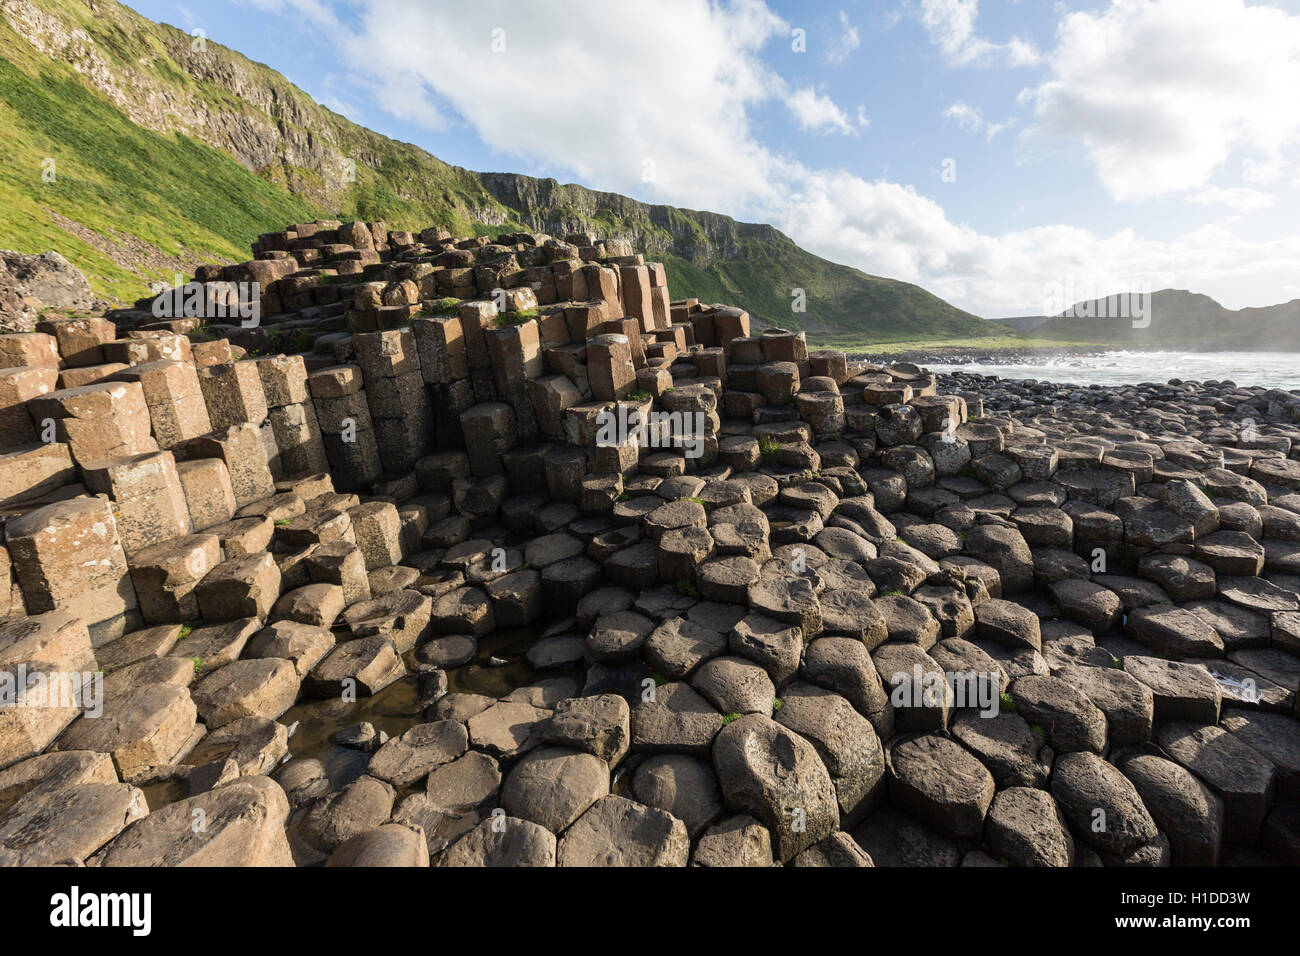 Port Ganny at Giant's Causeway, Bushmills, County Antrim, Northern Ireland, UK - Stock Image